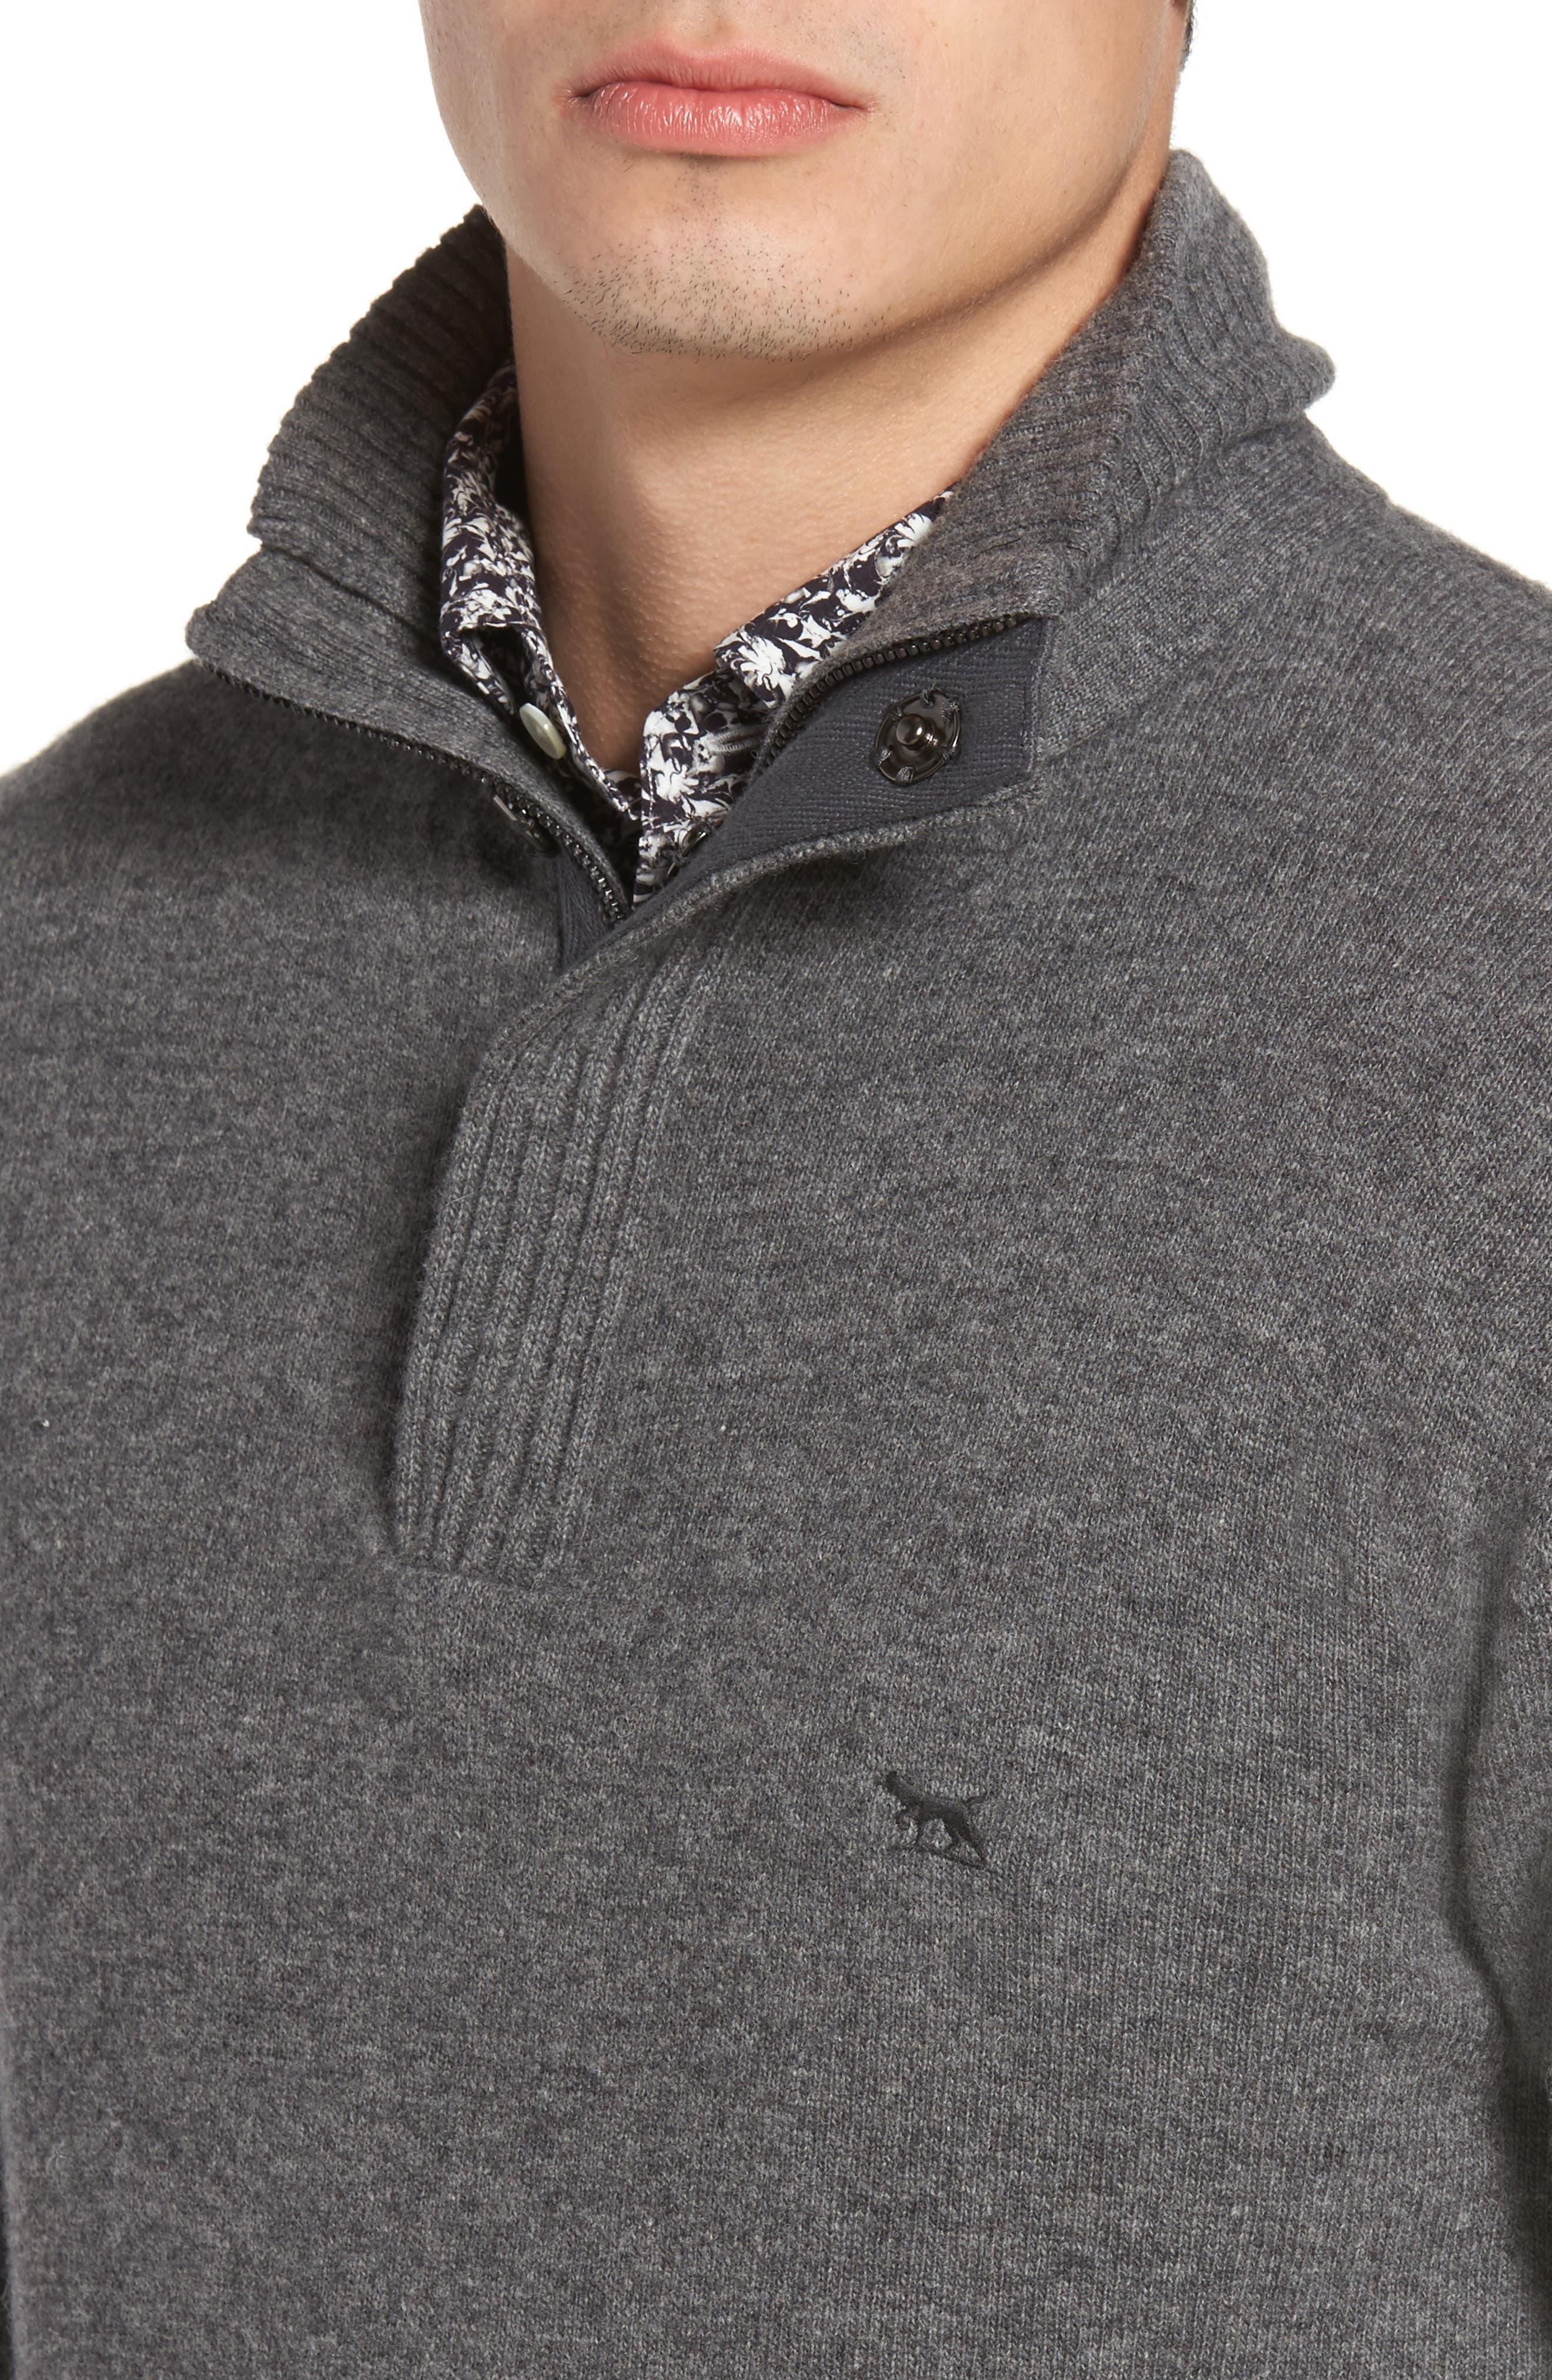 Cape Rodney Lambswool Pullover,                             Alternate thumbnail 4, color,                             CHARCOAL